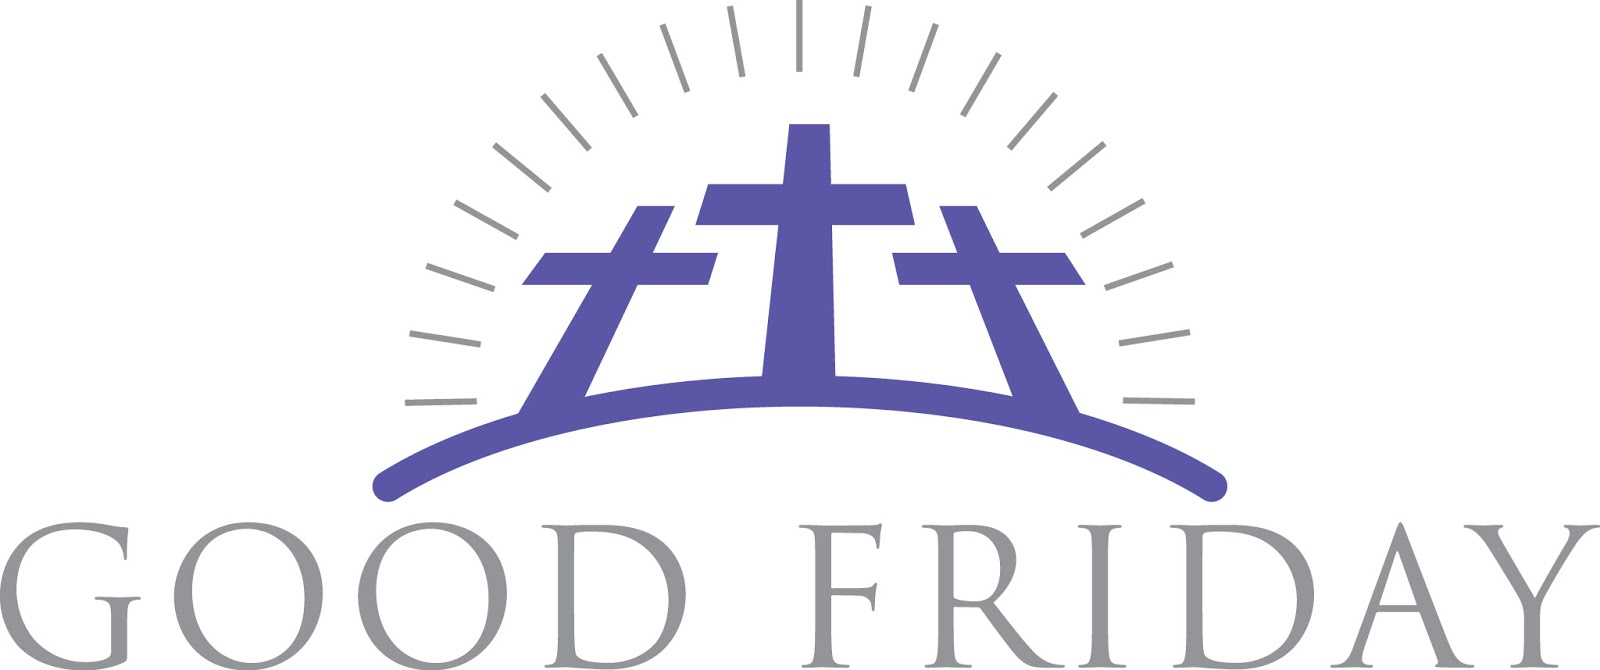 good friday clipart beautiful clipart of good friday 2018 rh wishyouhappyday com good friday clipart images good friday clipart religious